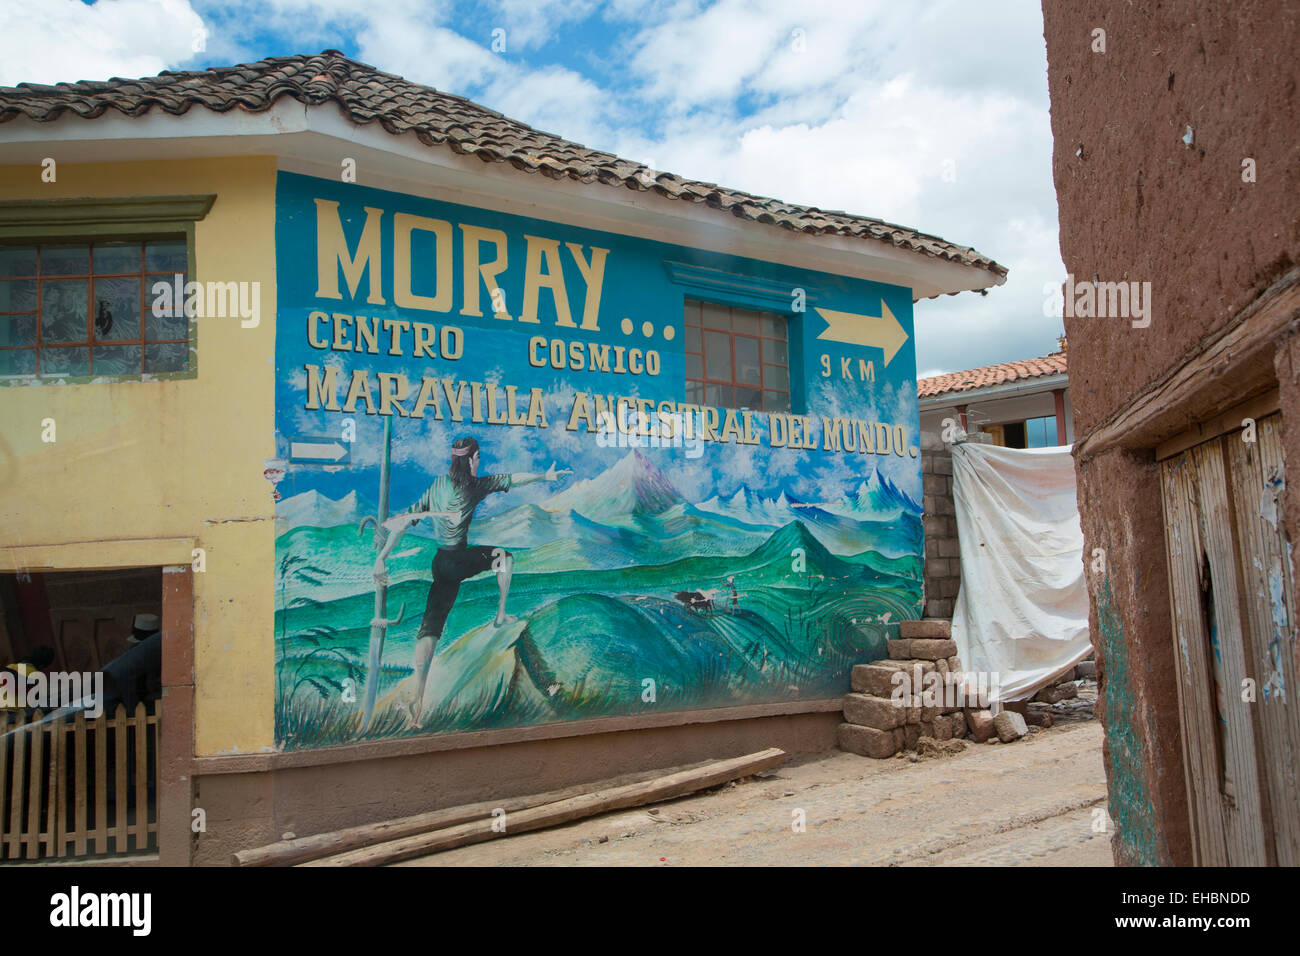 Moray town, Sacred Valley, Cusco Region, Urubamba Province, Machupicchu District, Peru - Stock Image